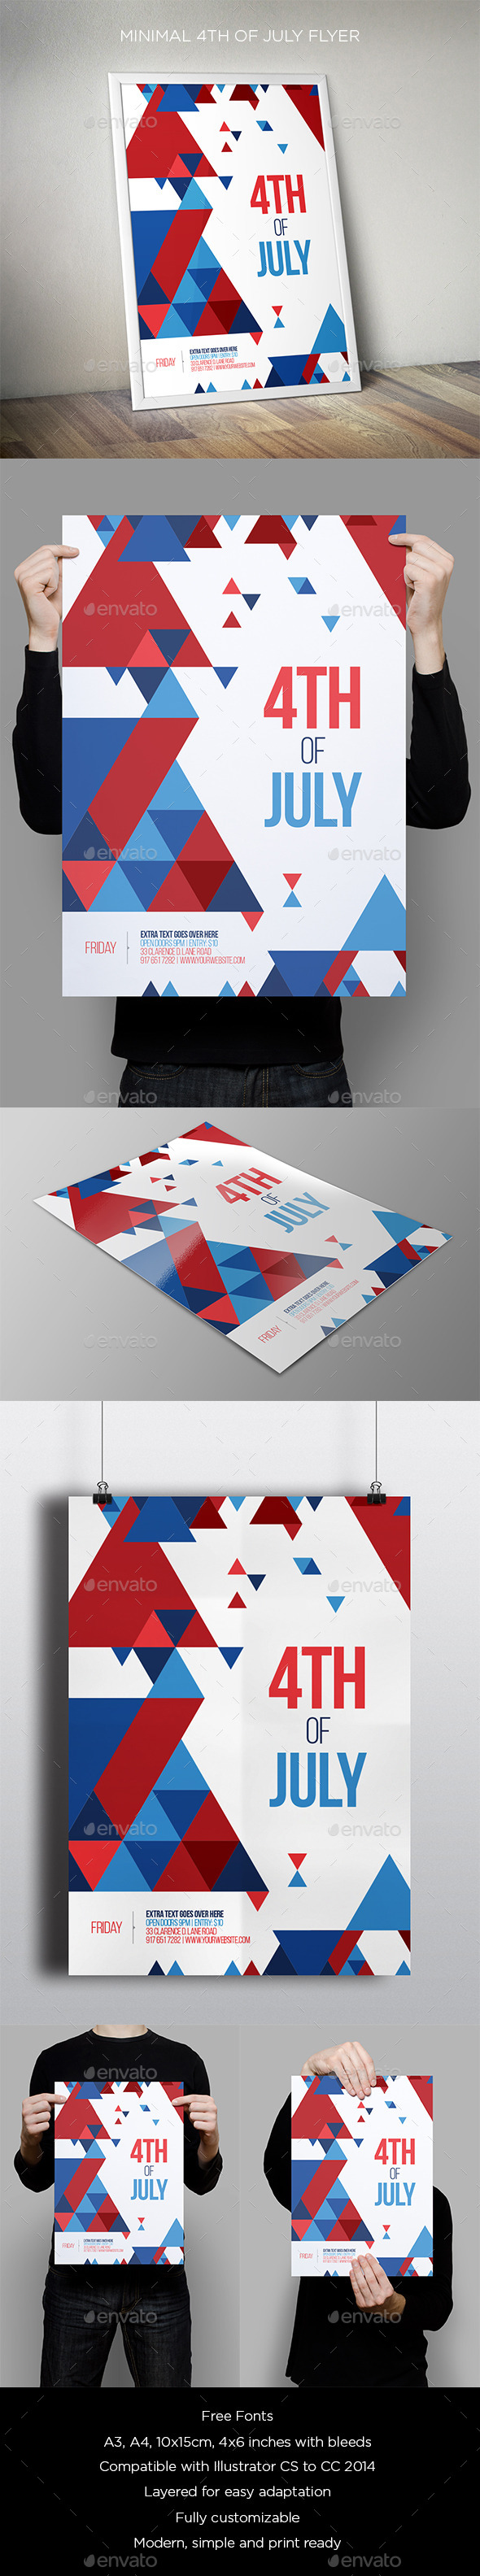 GraphicRiver Minimal 4th Of July Flyer 11426718